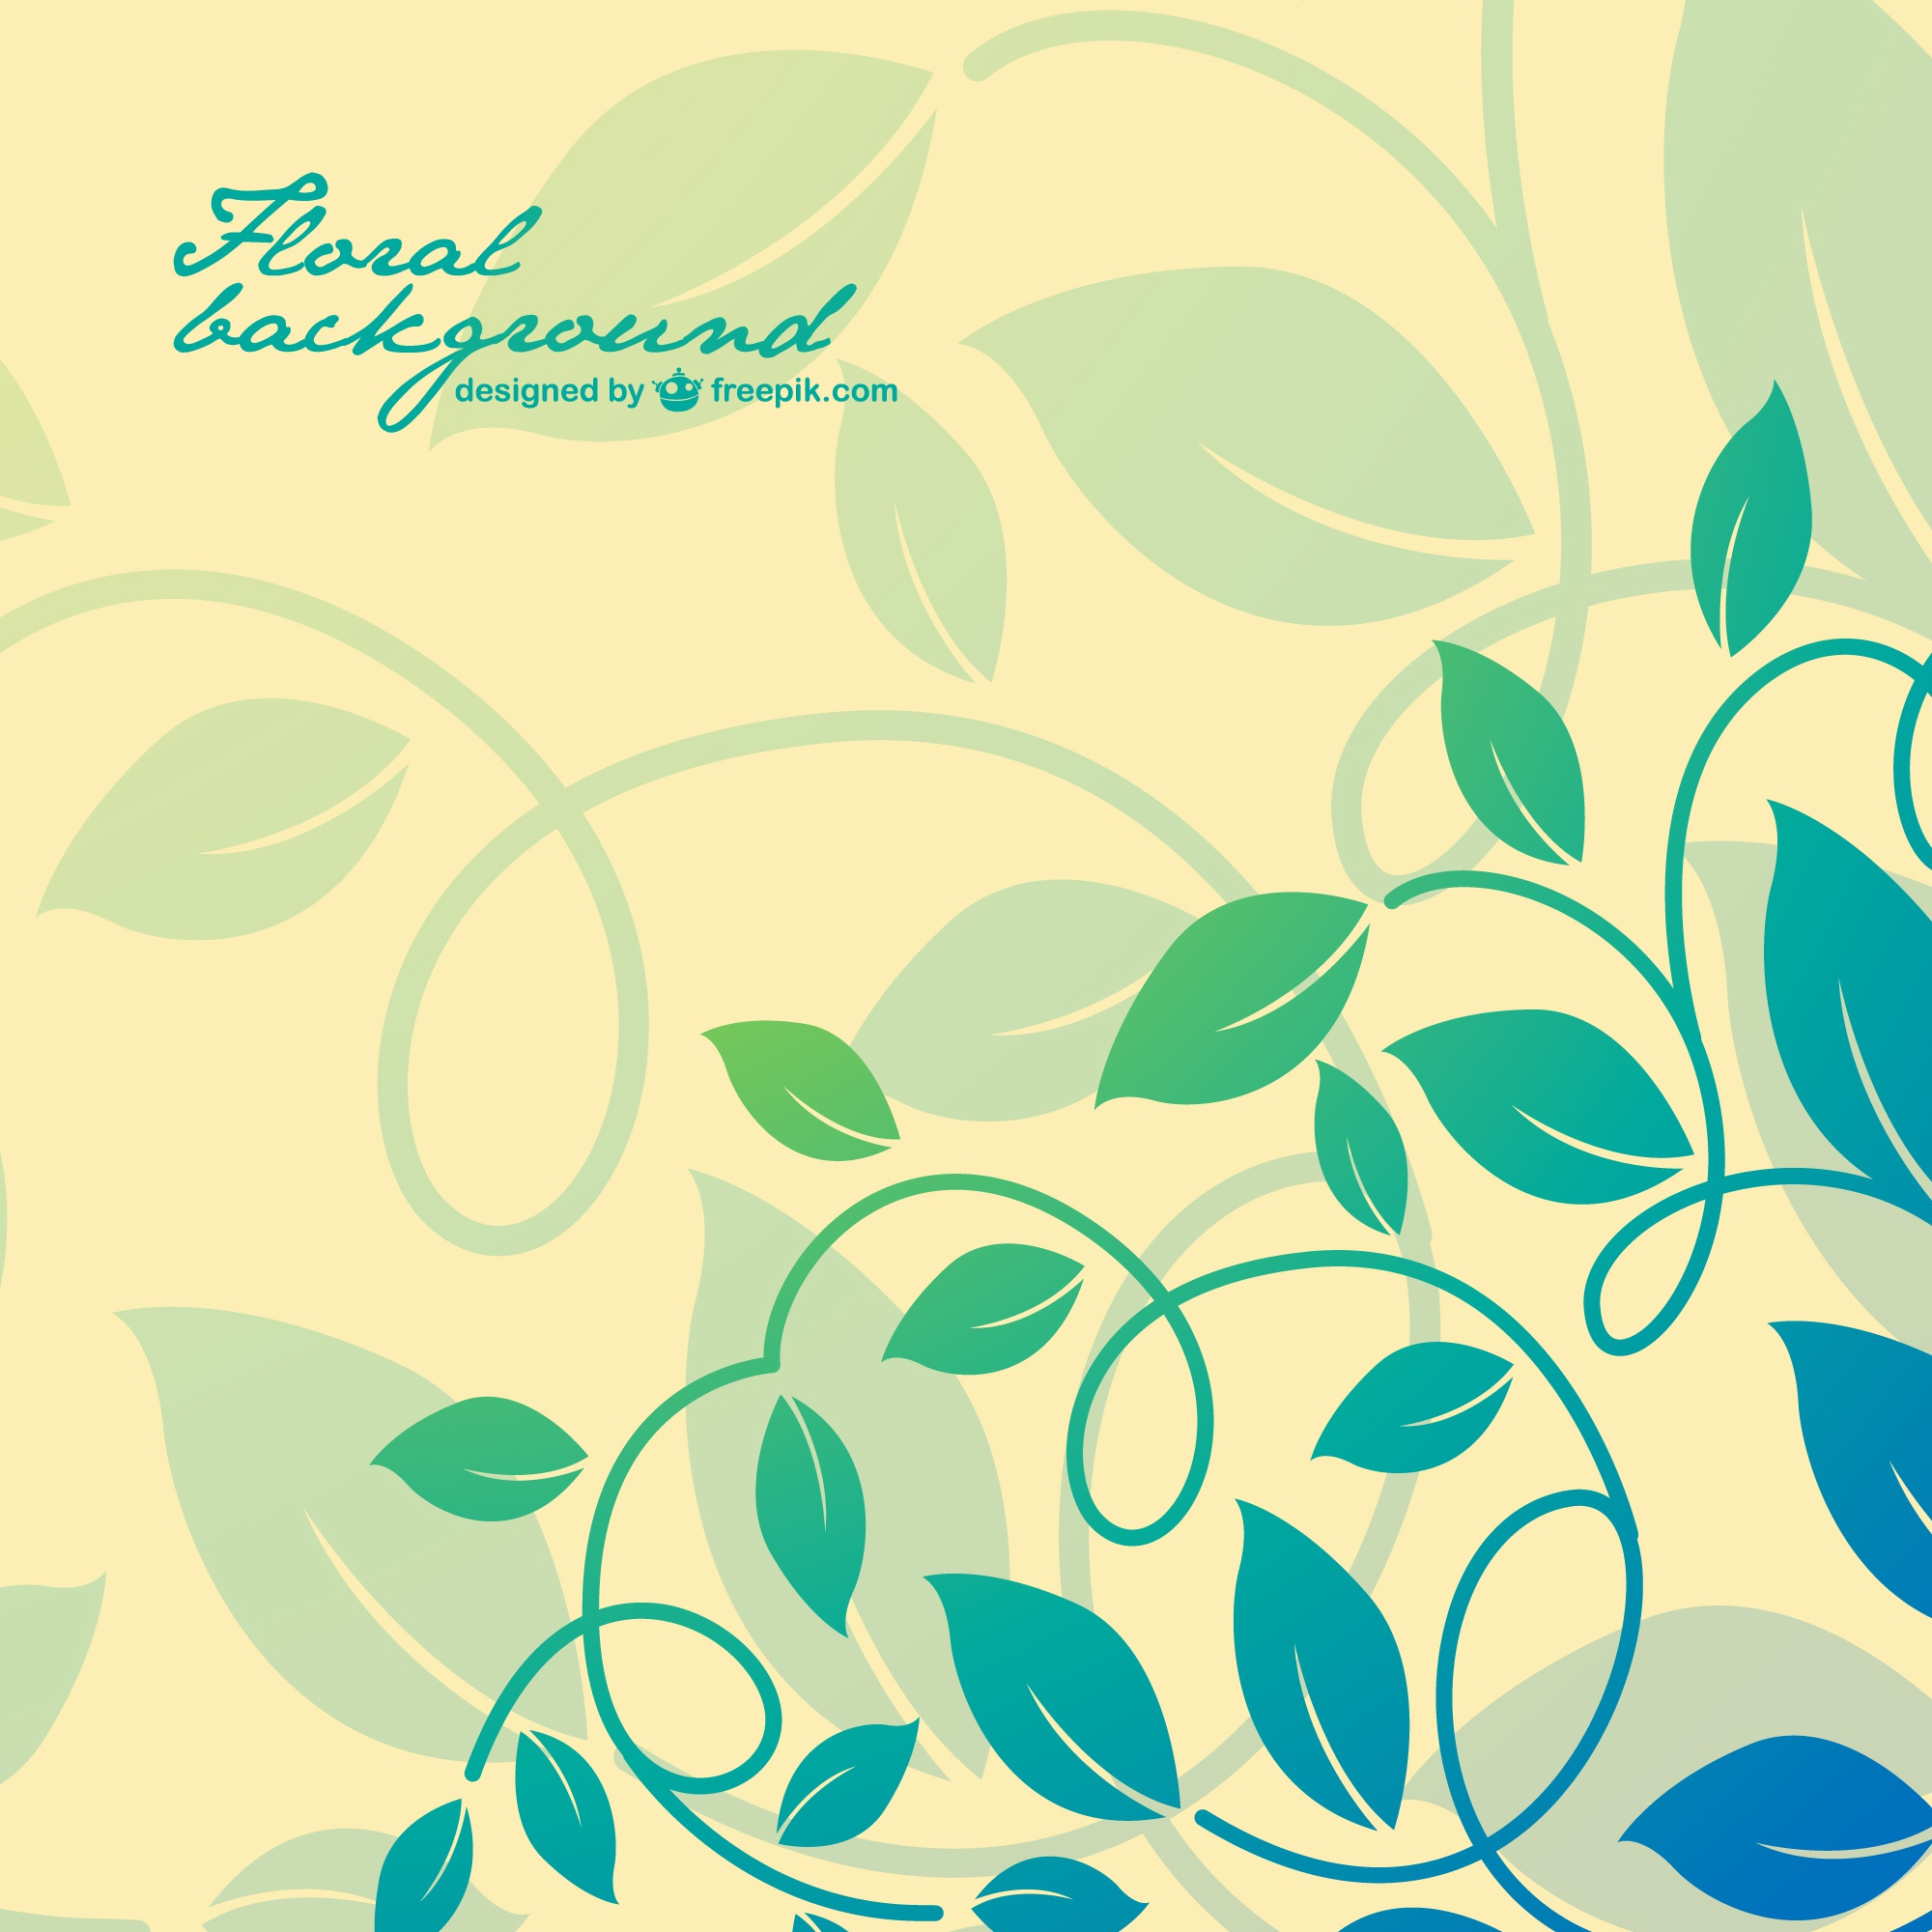 Floral free abstract background